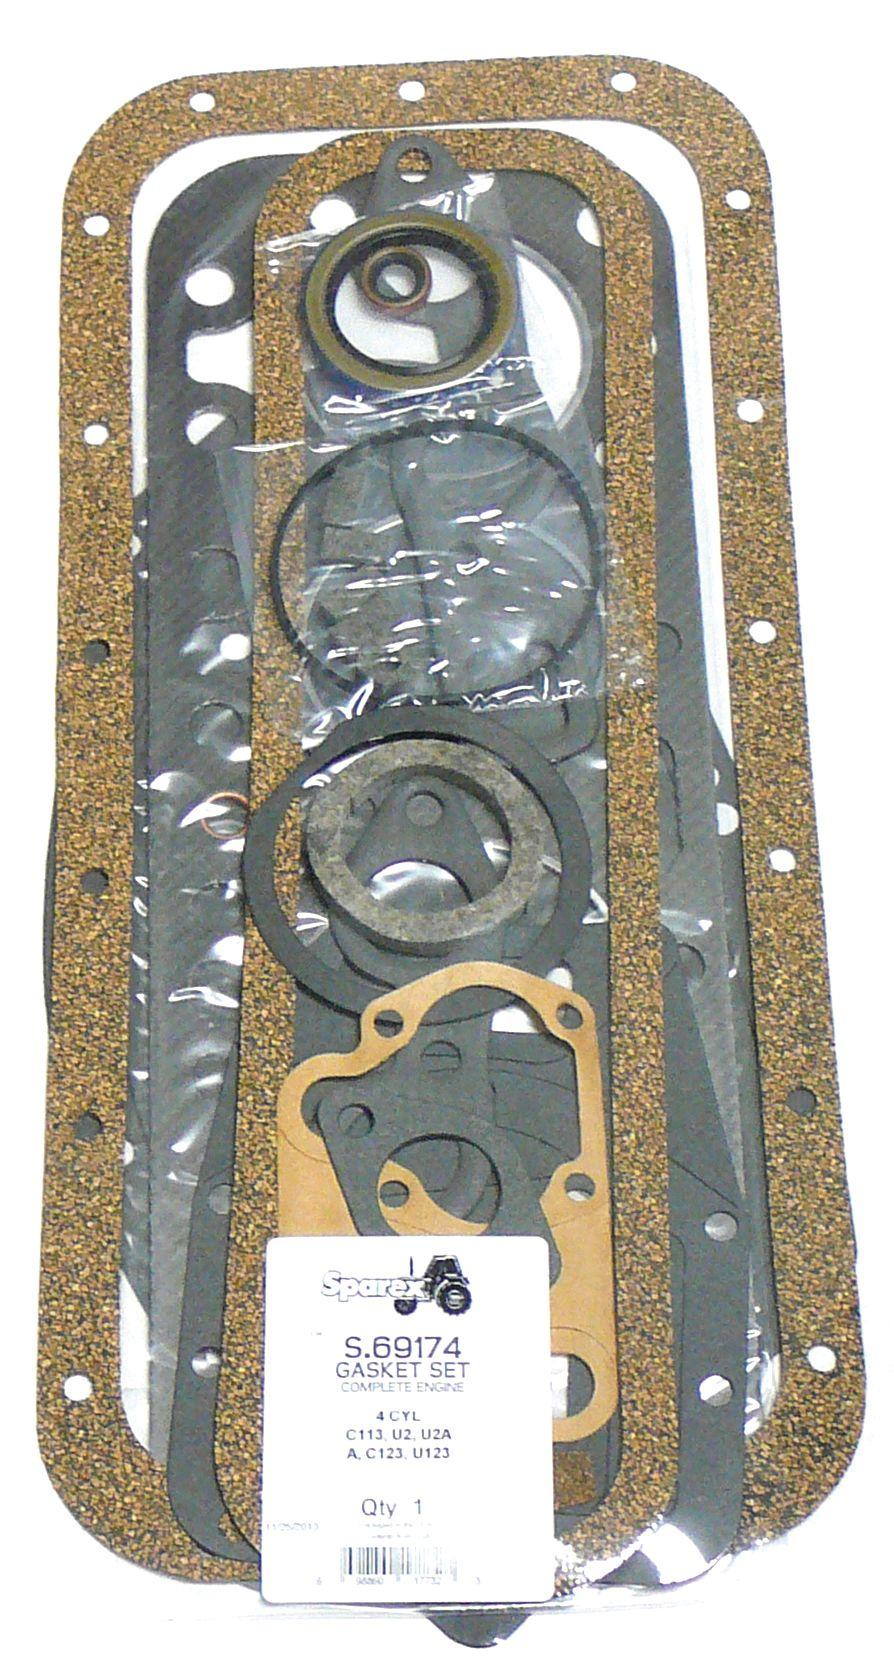 INT. HARVESTER GASKET SET-COMPLETE 69174